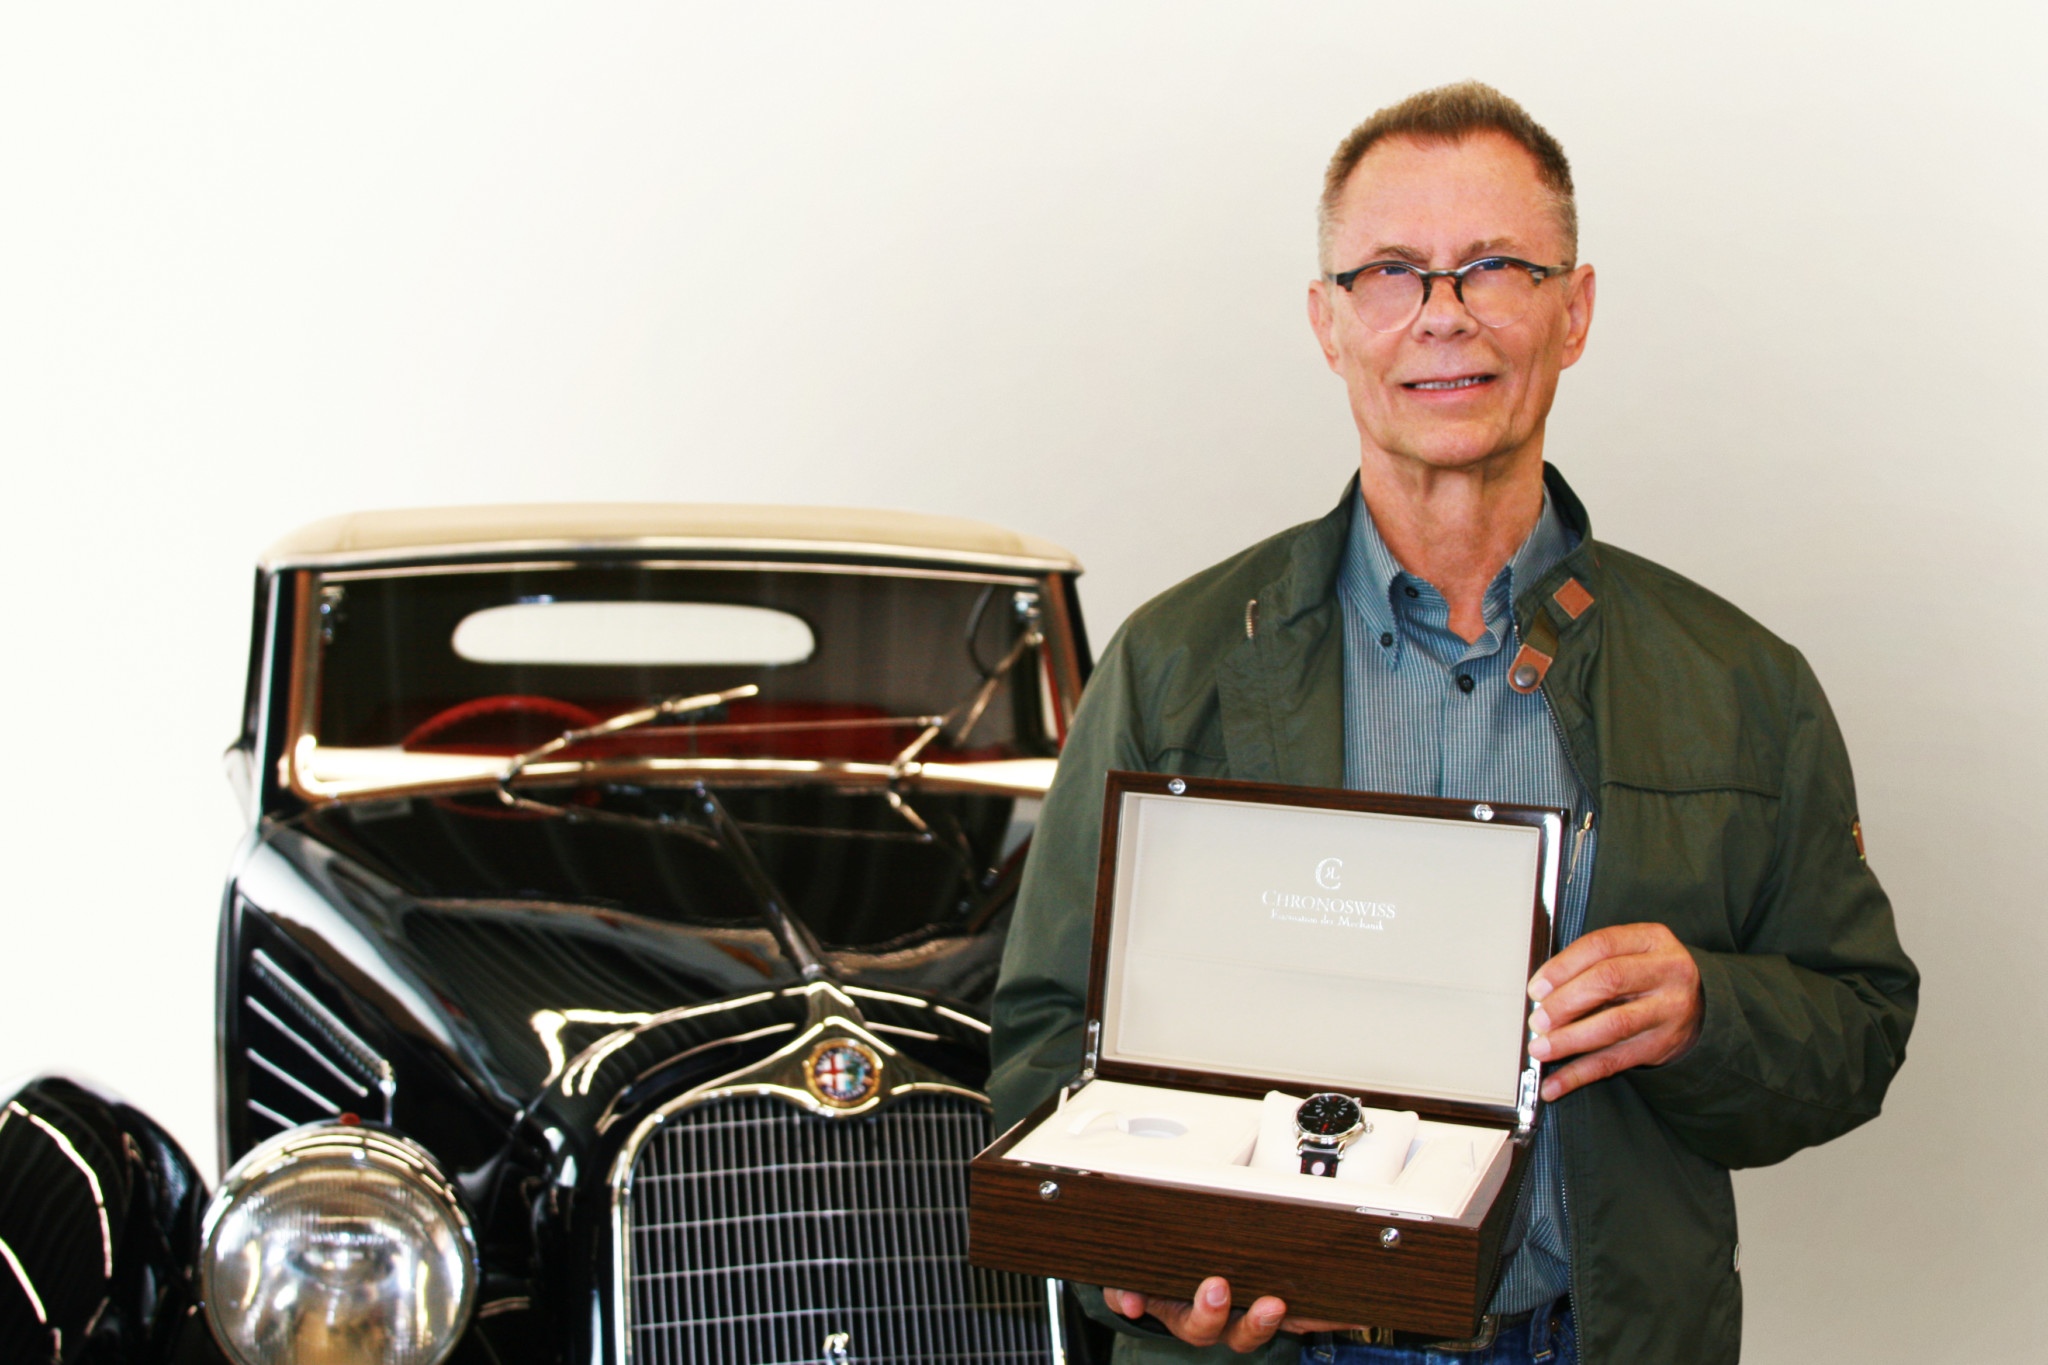 Winner Koni Lutziger with Chronoswiss Regulator Classic Rallye